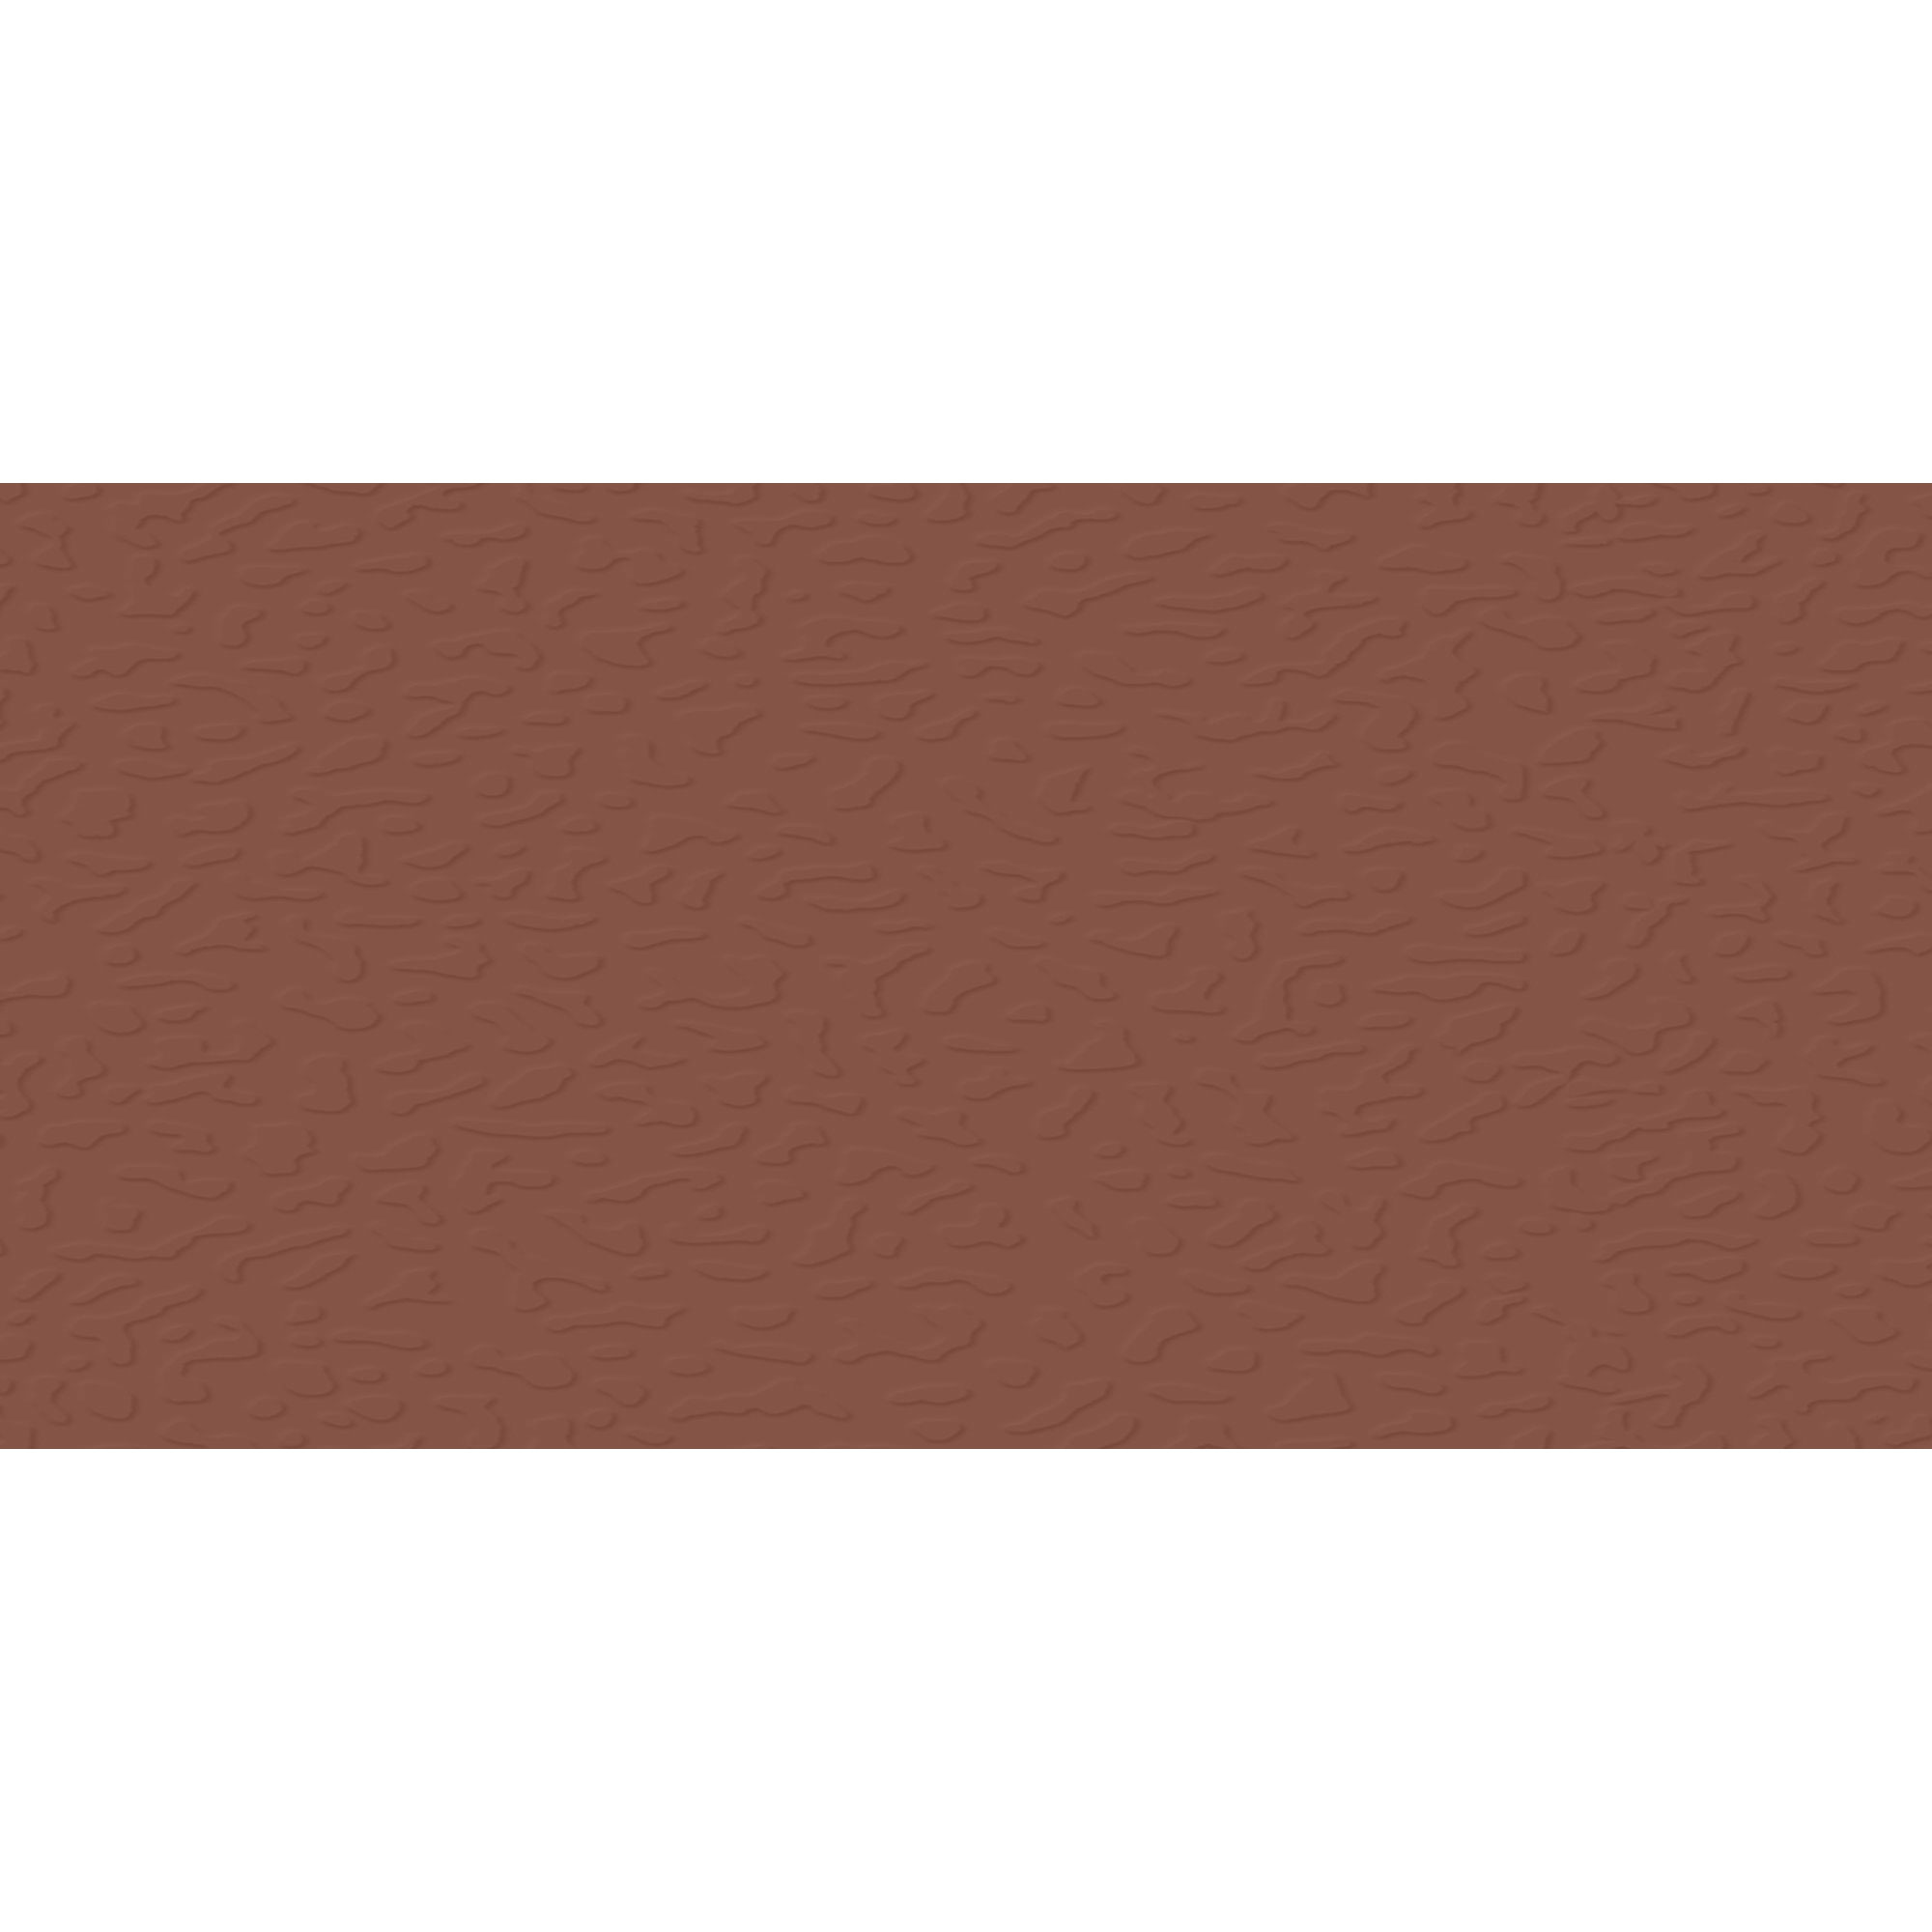 Roppe Designers Choice Textured 6 x 12 Brick